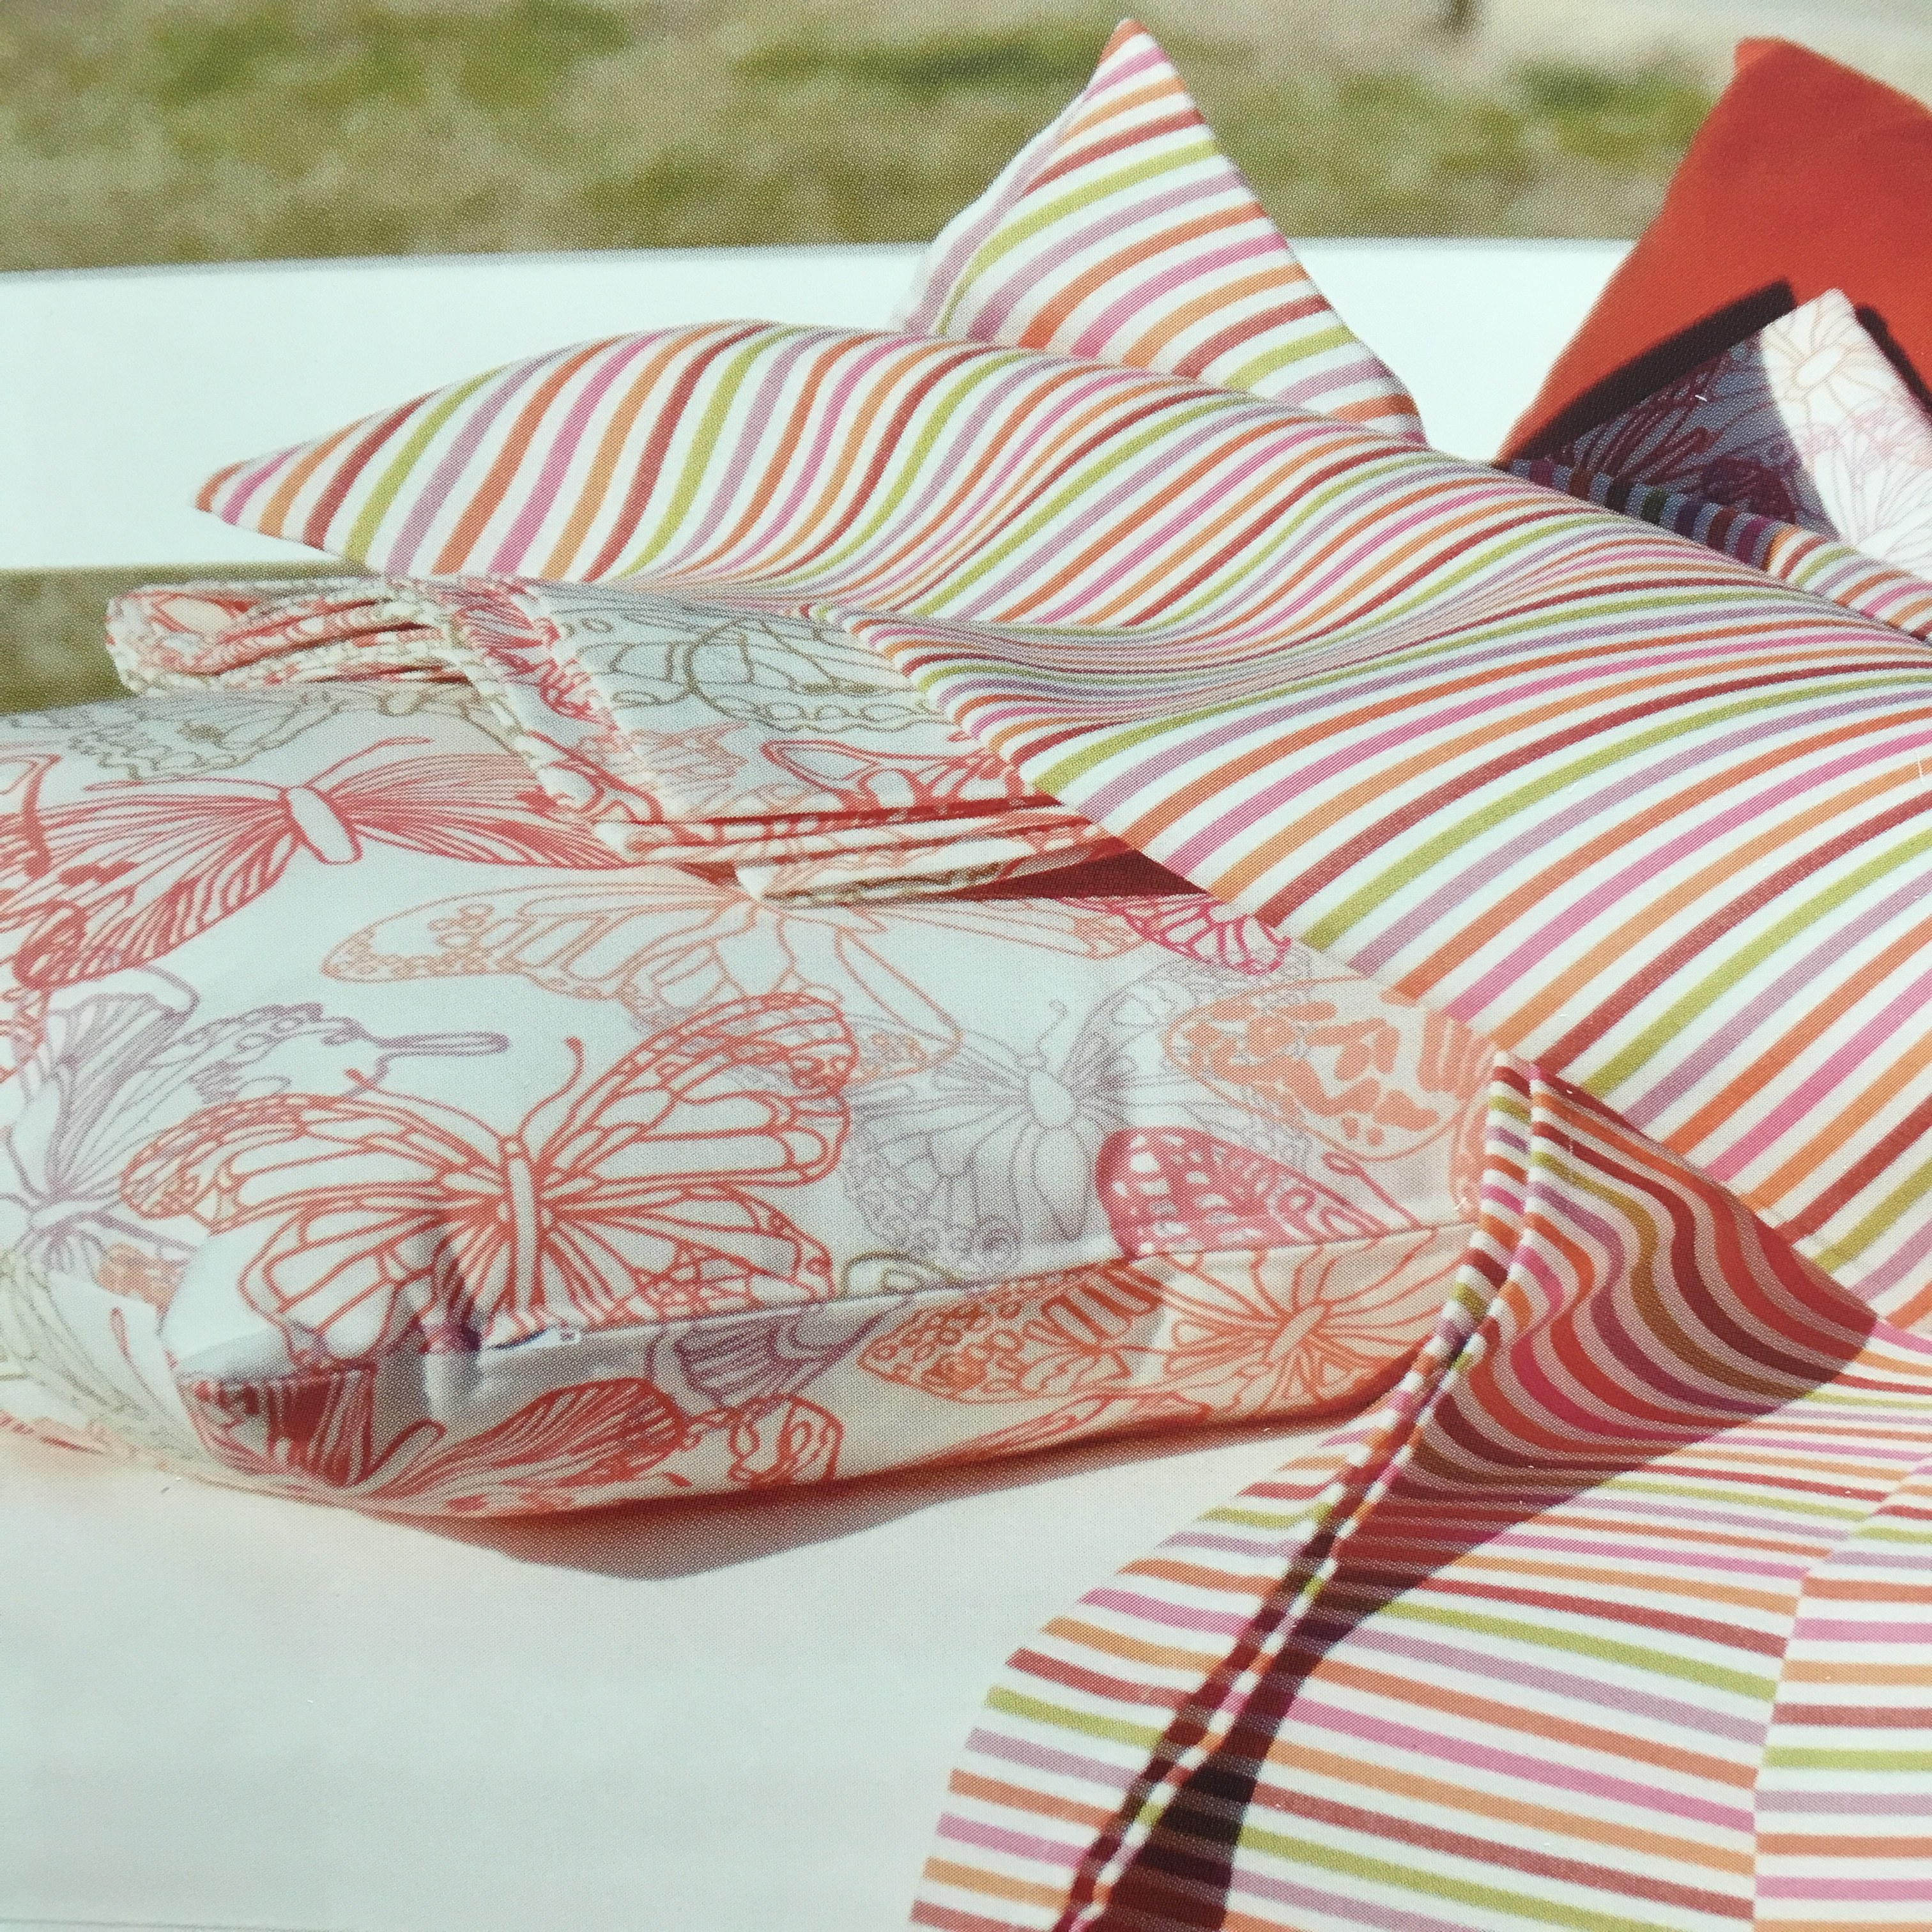 outdoor bed  Fabric 100 Solution Dyed Acrylic Plain Waterproof Beach Gsm Style  patterned  Tent Feature Weig Material Yarn